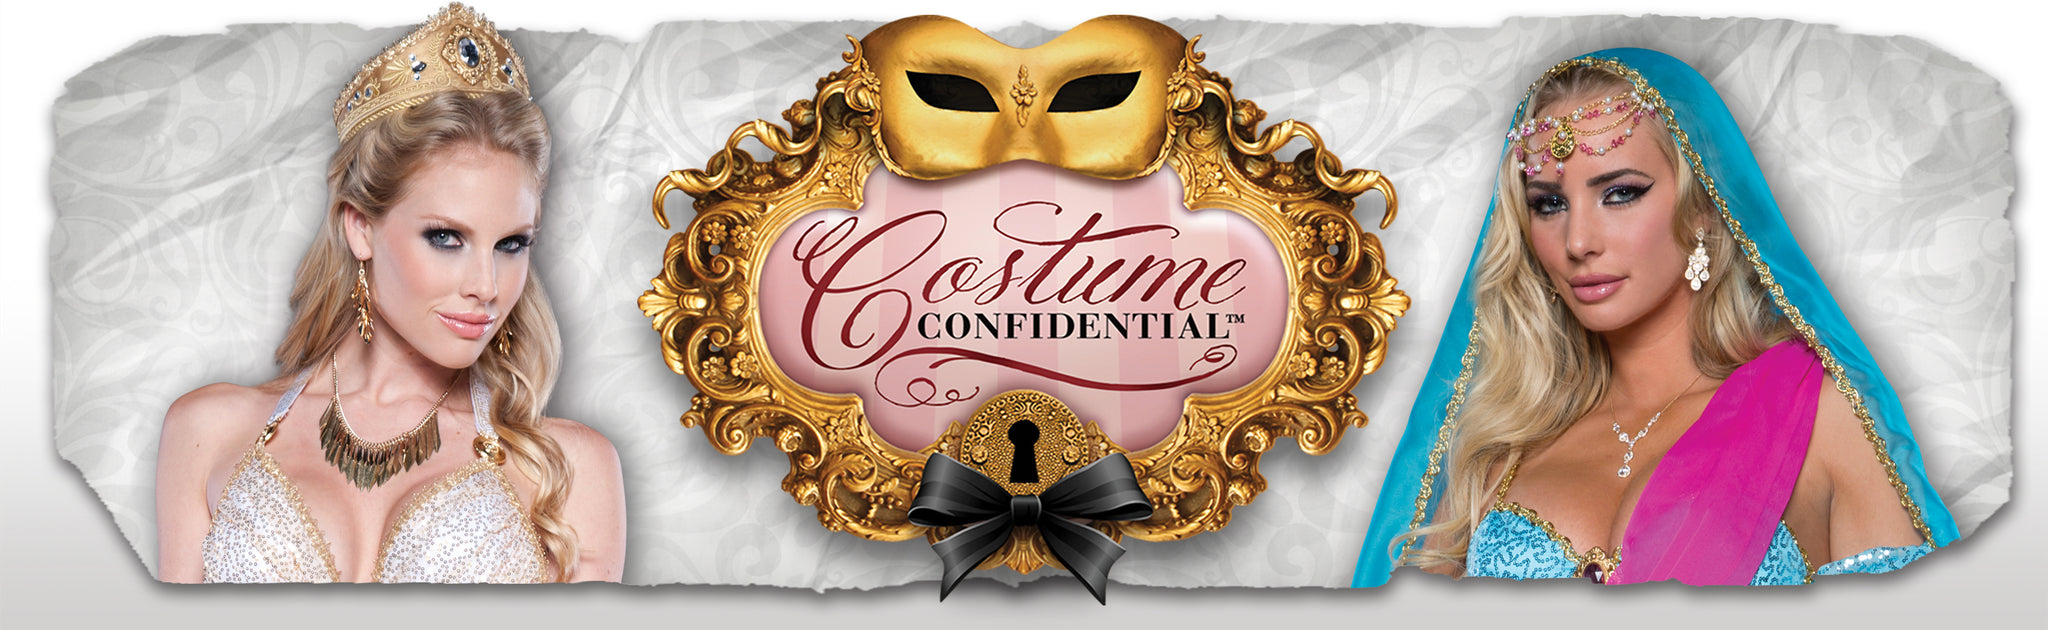 Costume Confidential